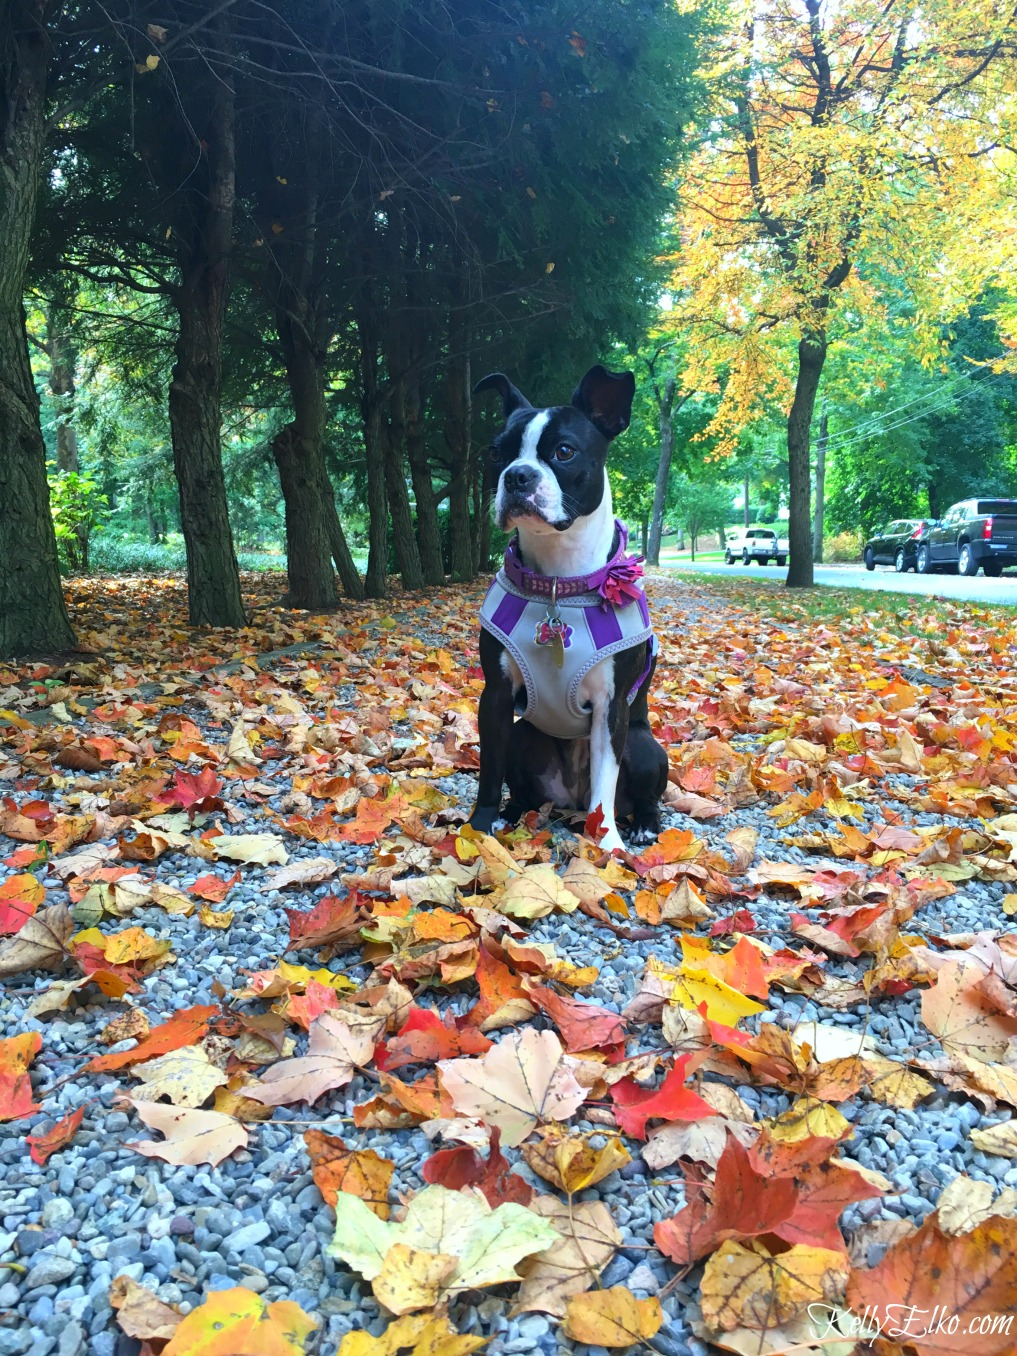 Cute Boston Terrier in the fall foliage kellyelko.com